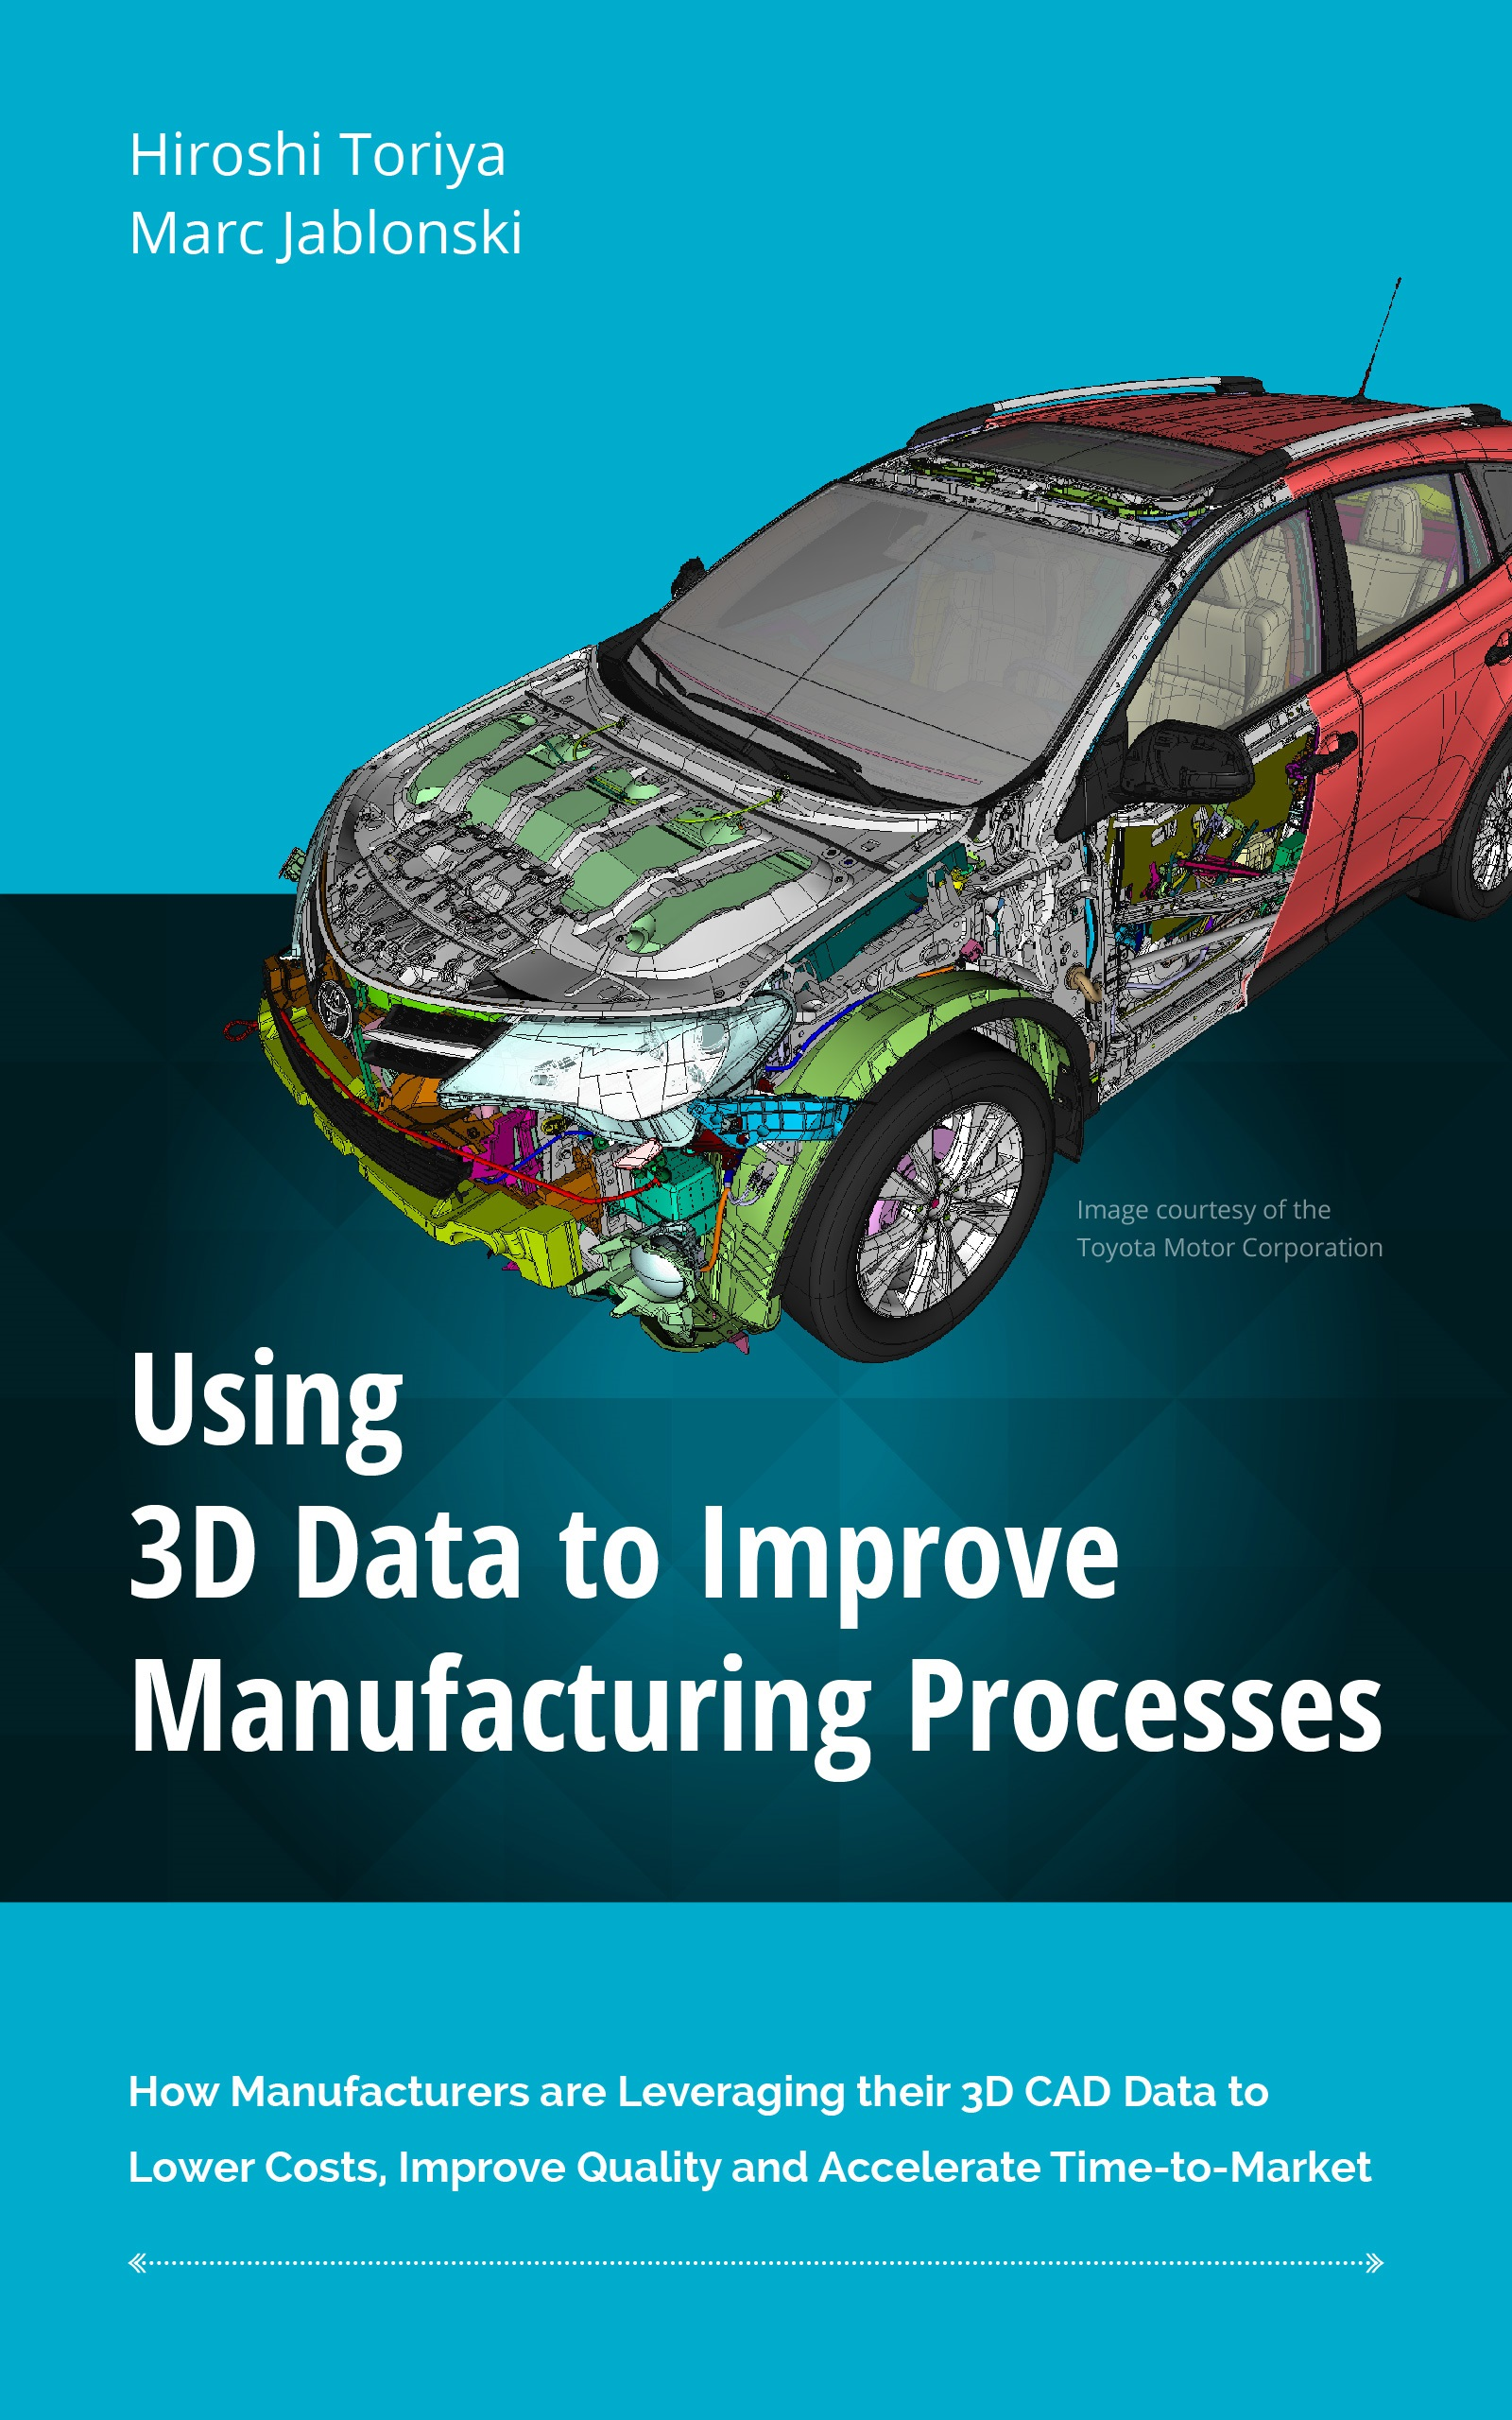 Get the FREE eBook: Using 3D Data to Improve Manufacturing Processes